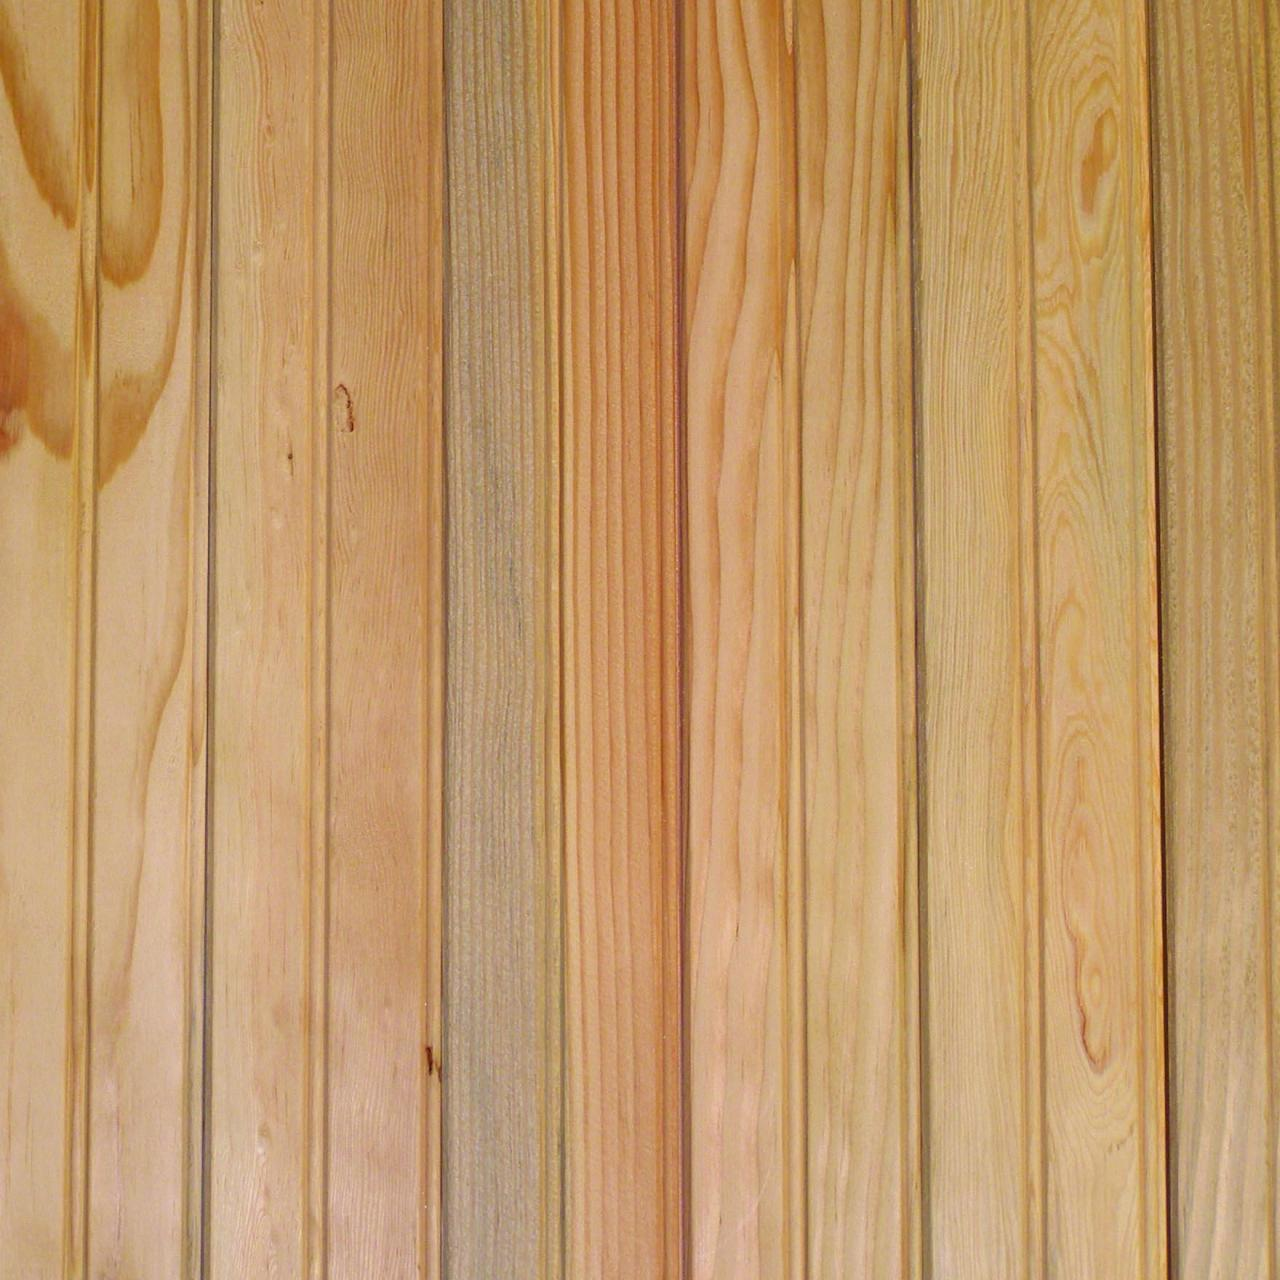 Quality Clear Douglas Fir Finish & Patterns for sale